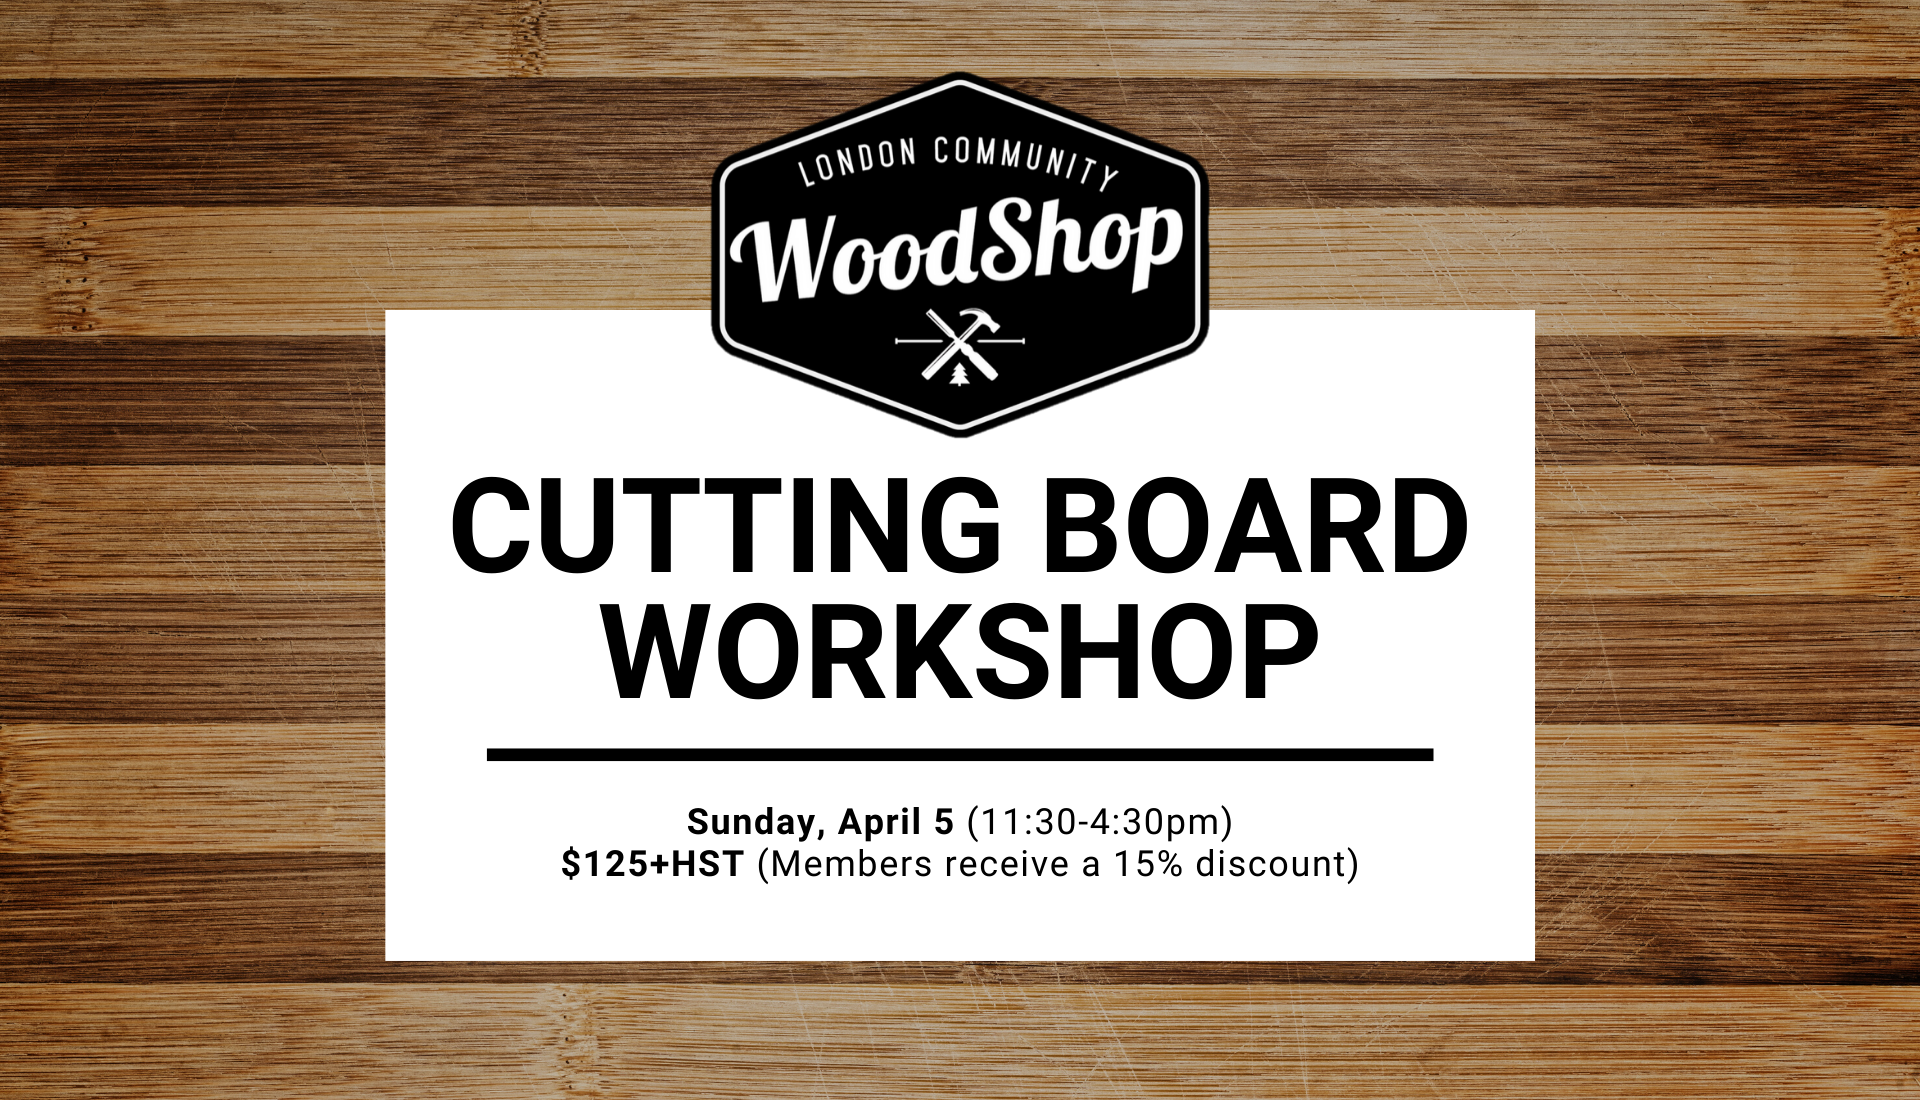 Cutting Board Workshop Sunday, April 5